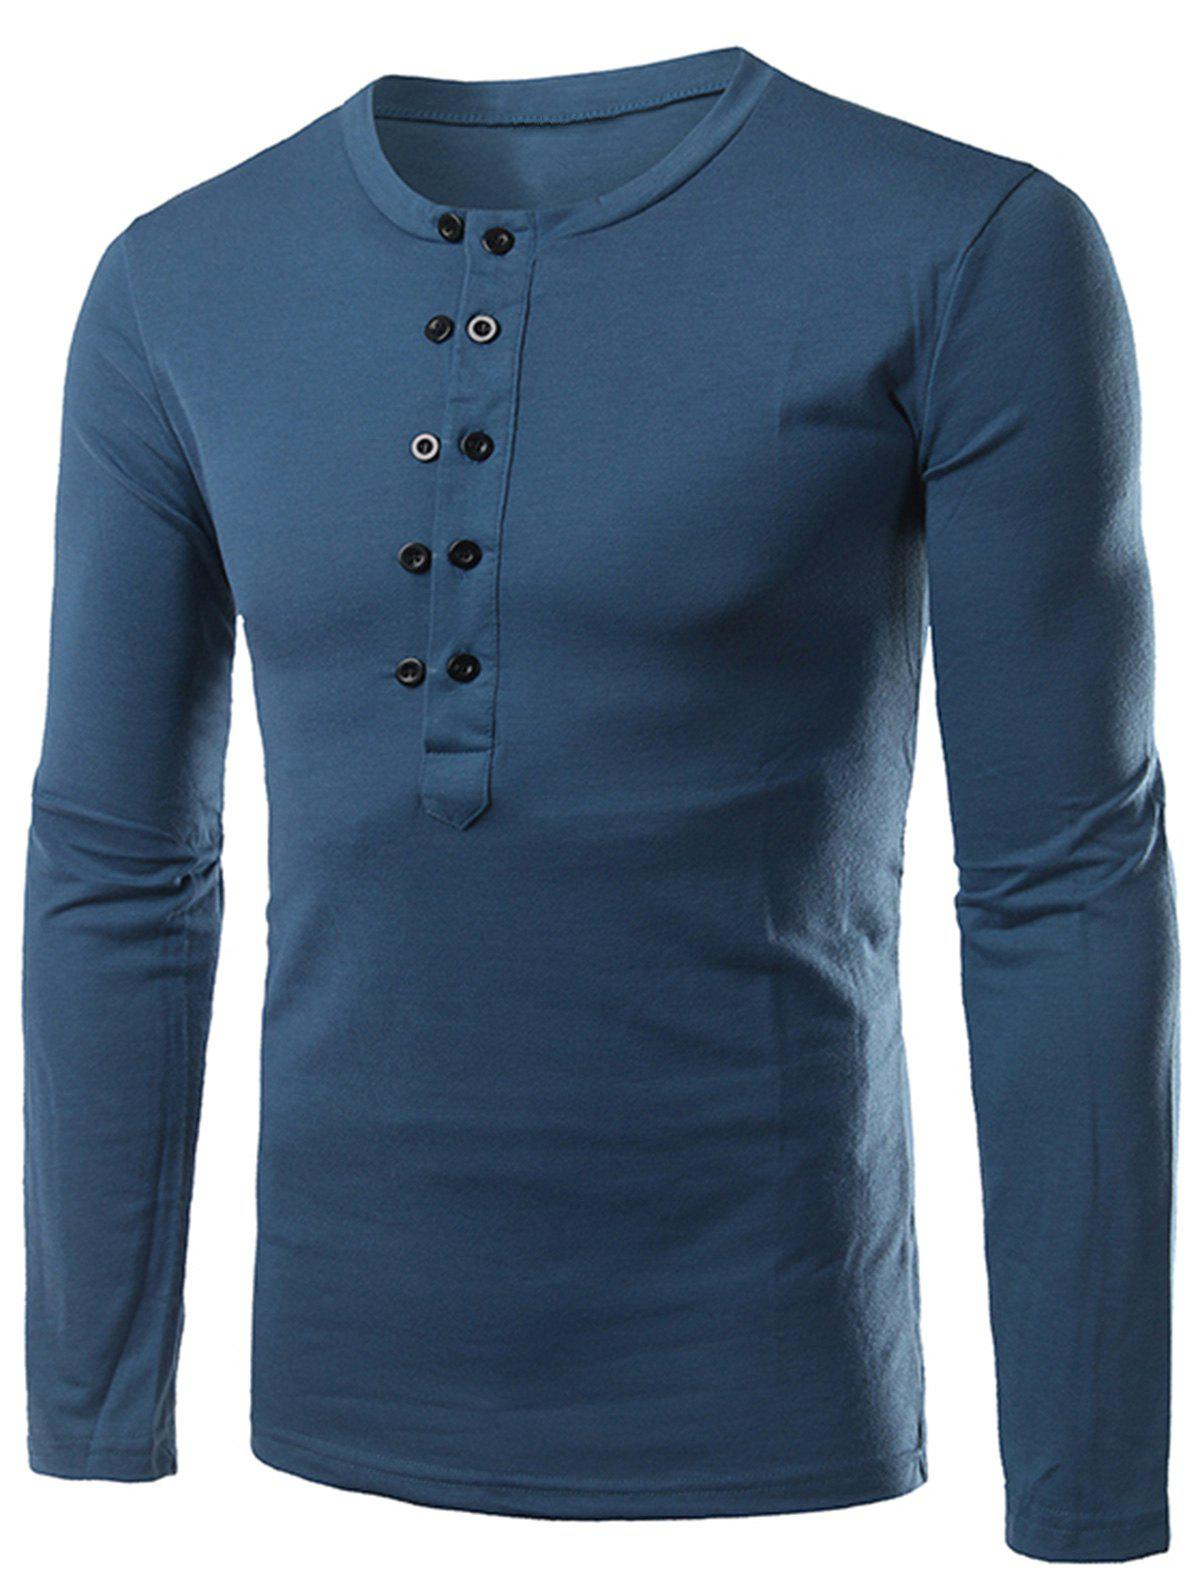 Long Sleeve Half Buttons T-shirt - BLUE 2XL